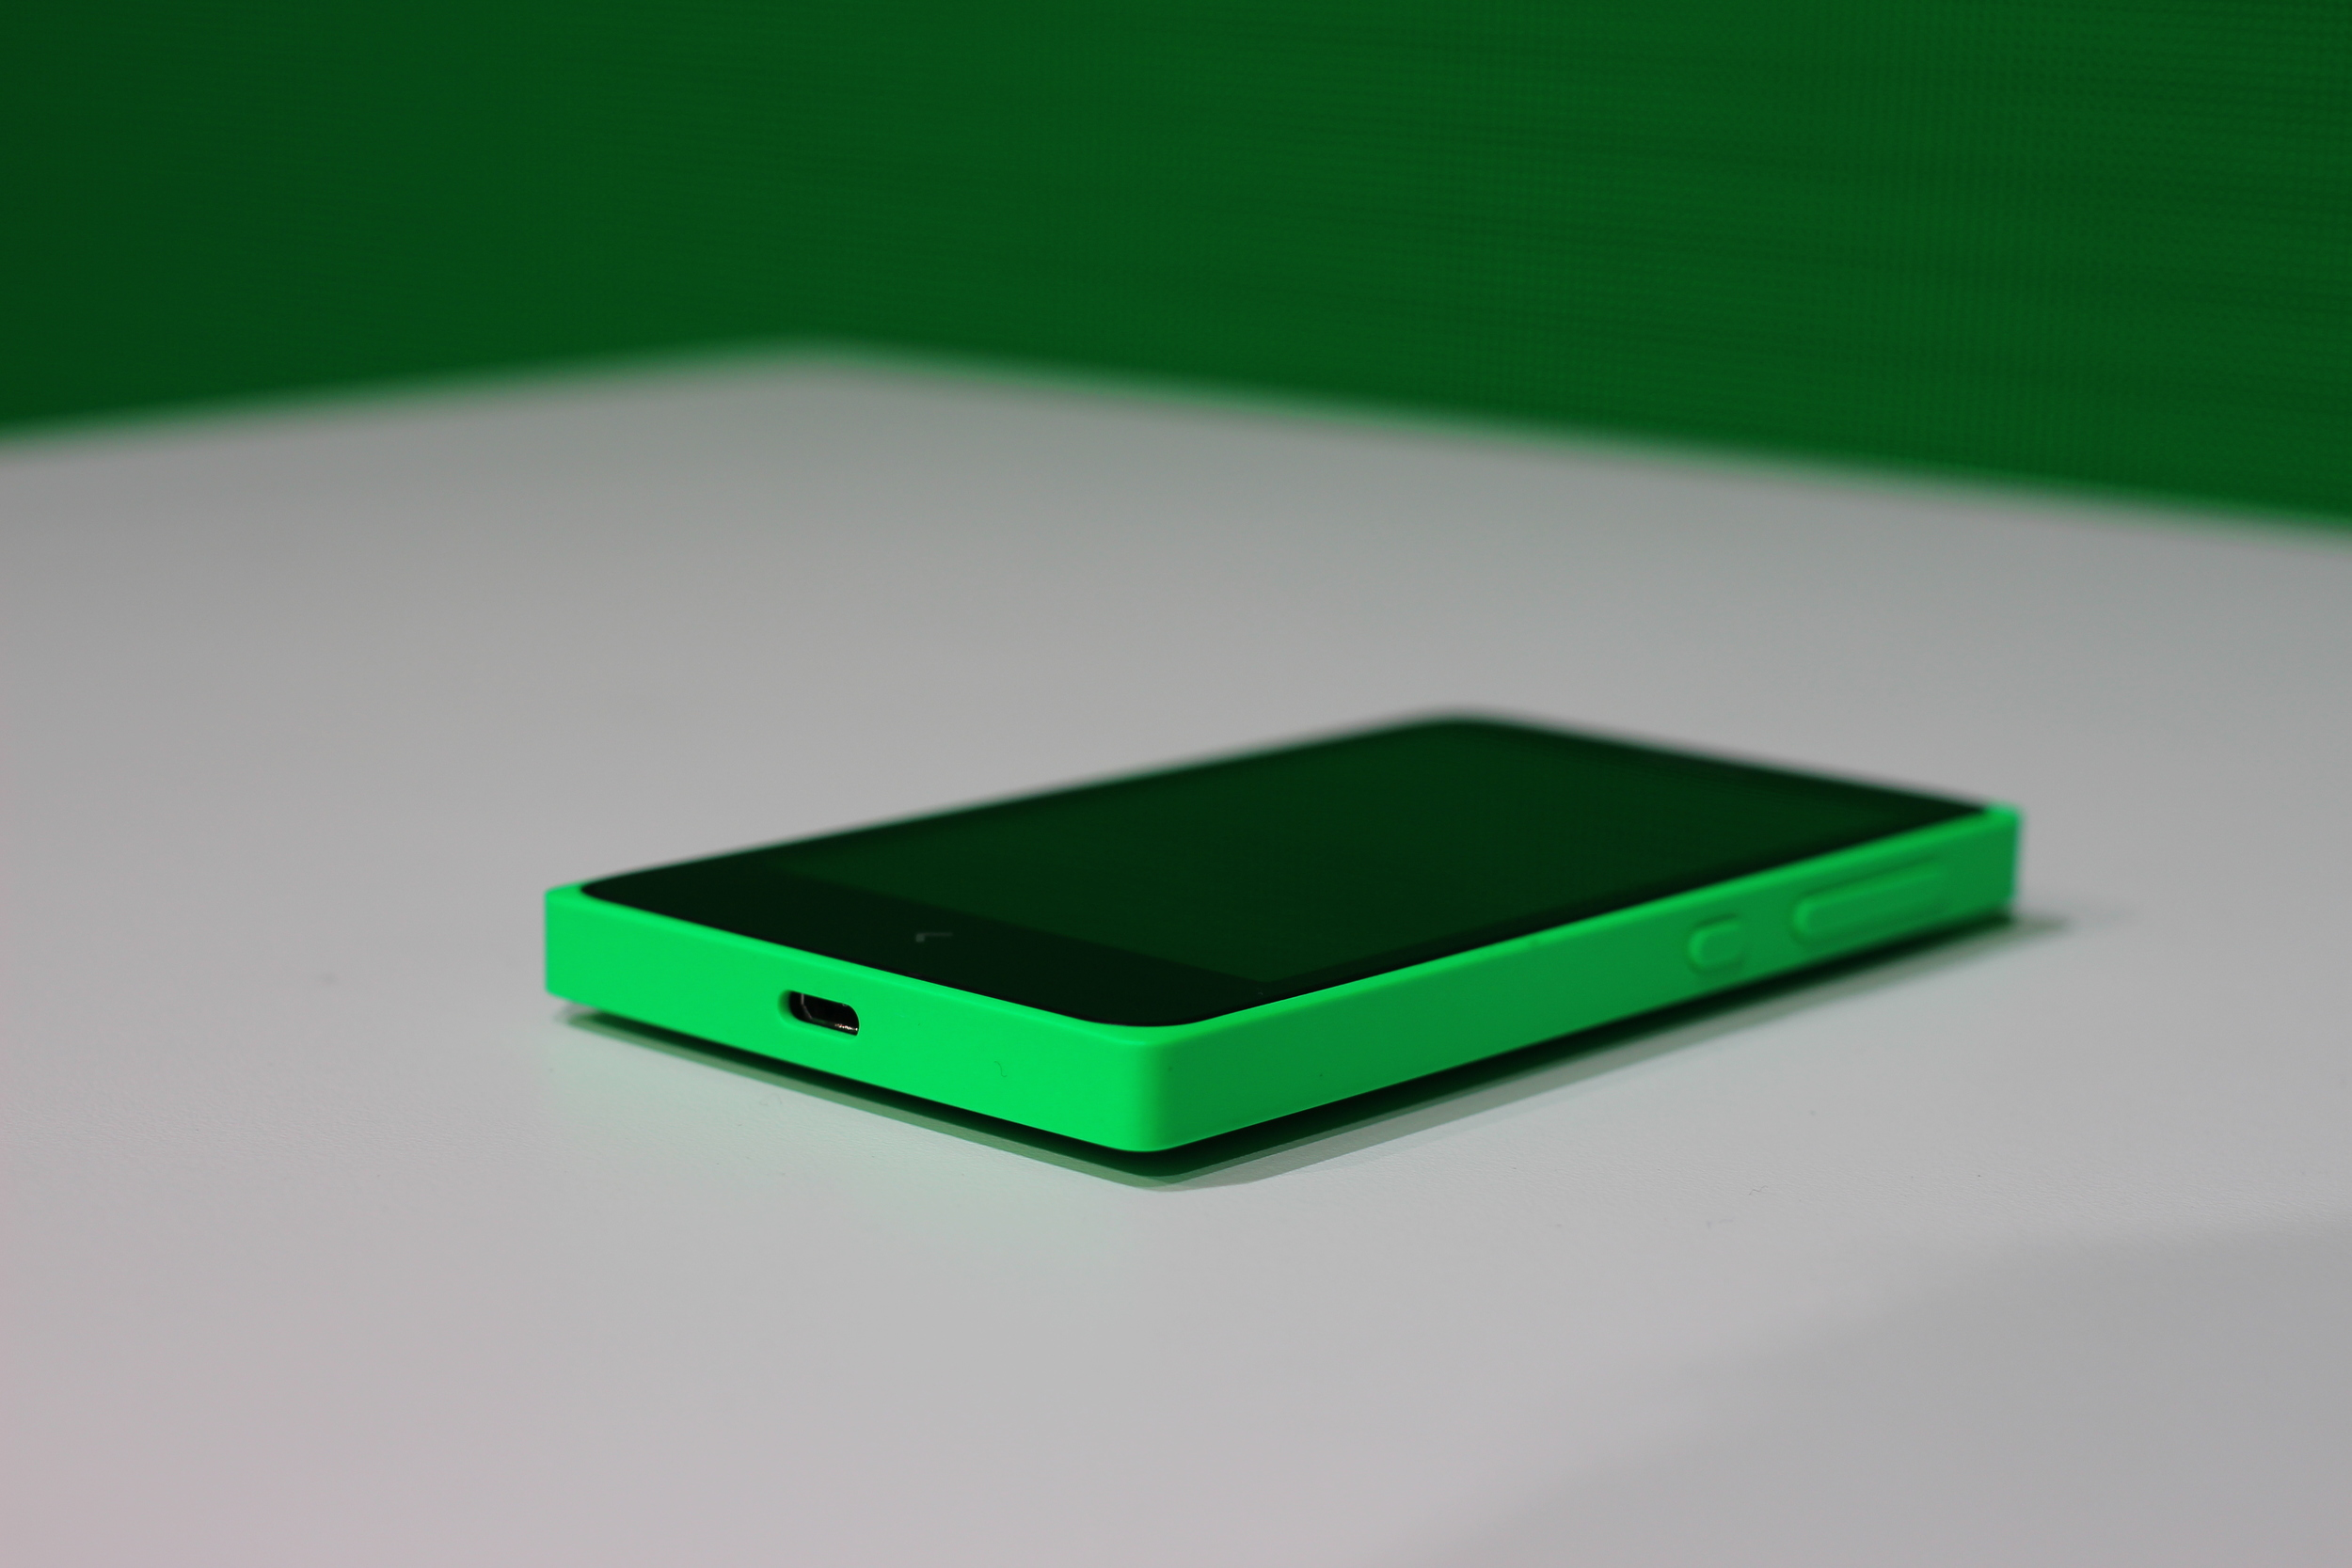 """"""" NokiaX """" by  Maurizio Pesce  is licensed under  CC BY-SA 2.0 ."""